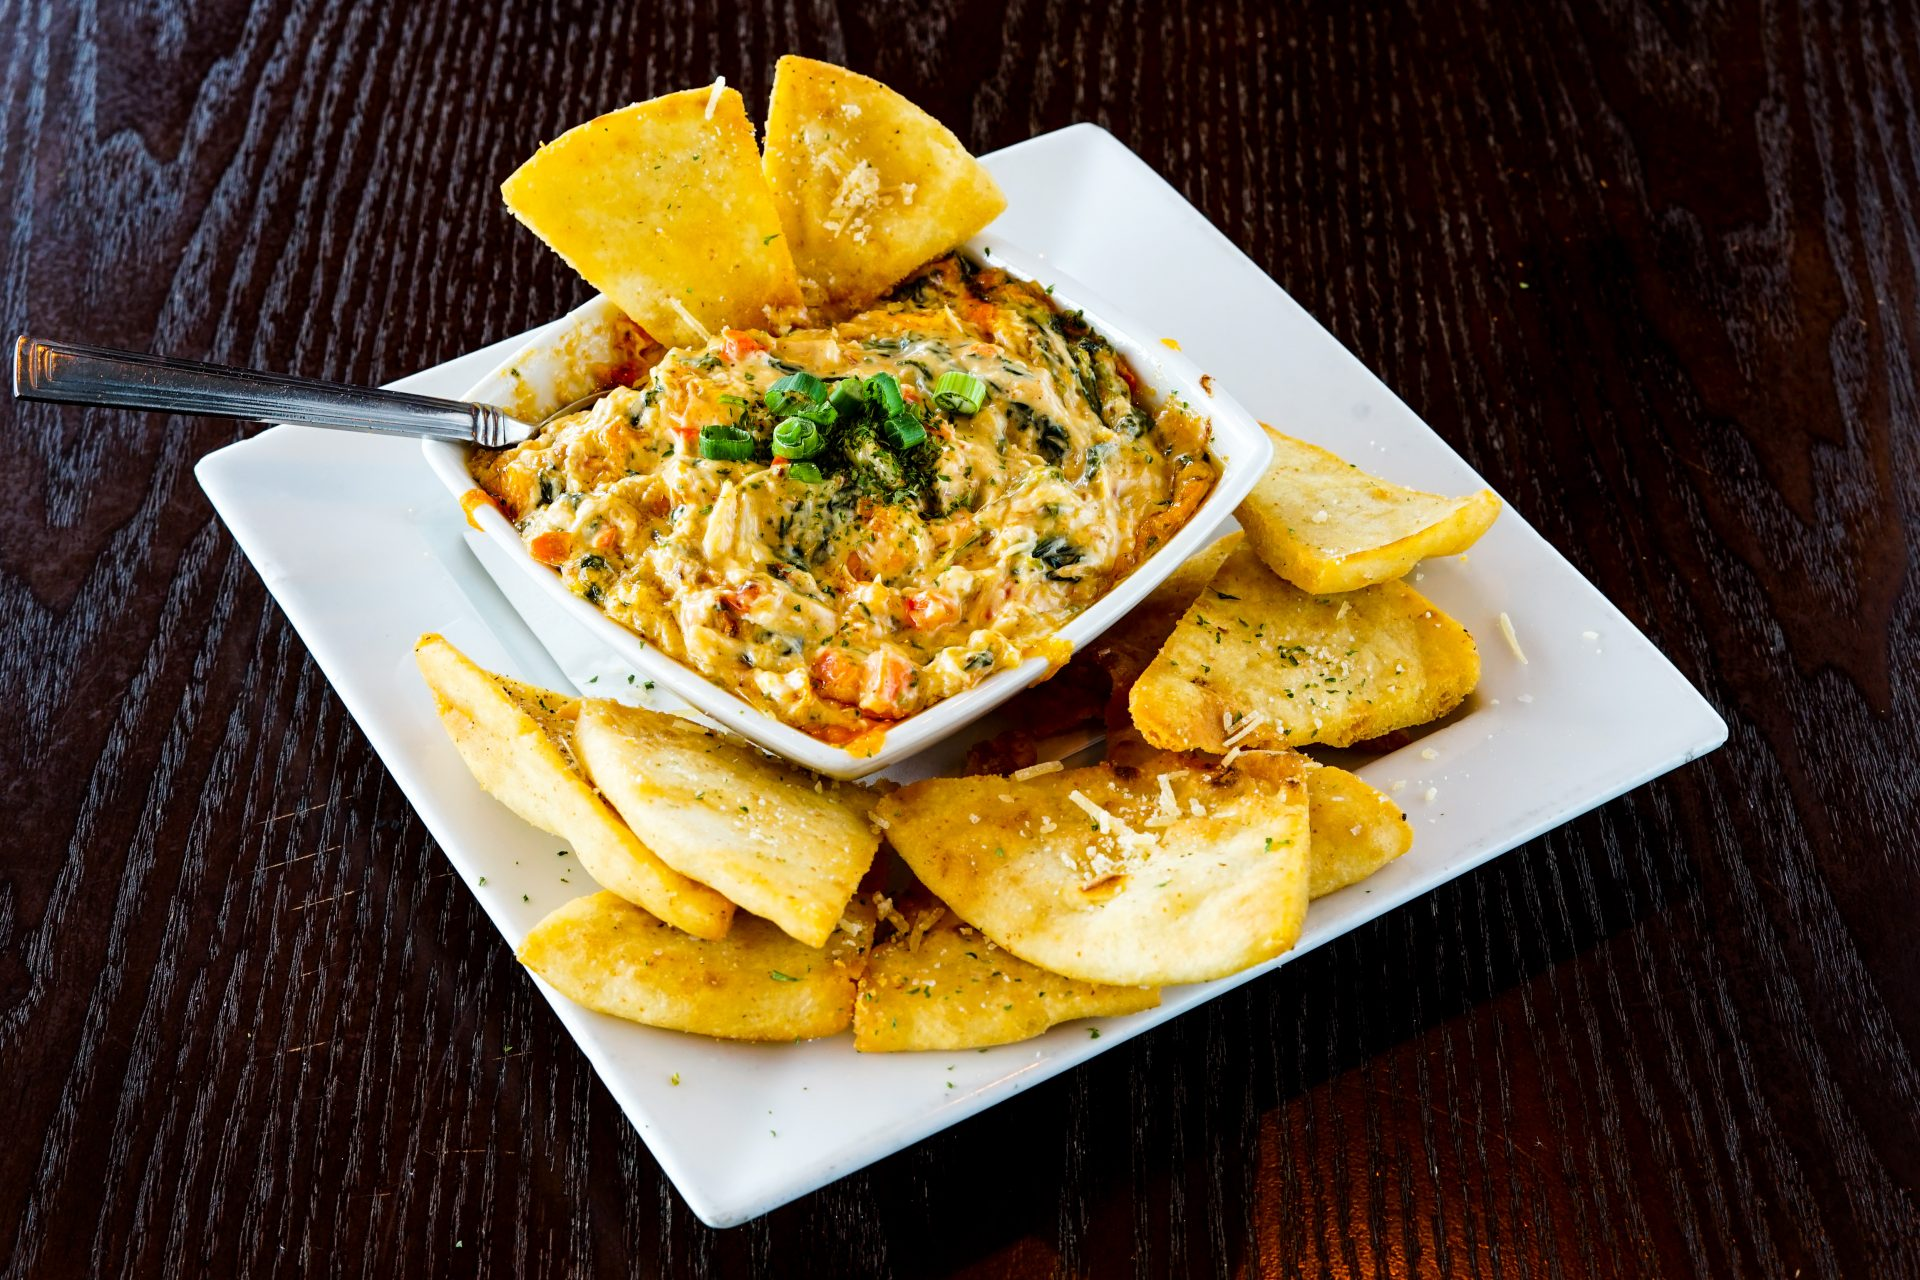 Image of Maryland Crab Dip - Crab, Shrimp, Spinach, Old Bay, Cheese Blend. Crispy Pita Chips